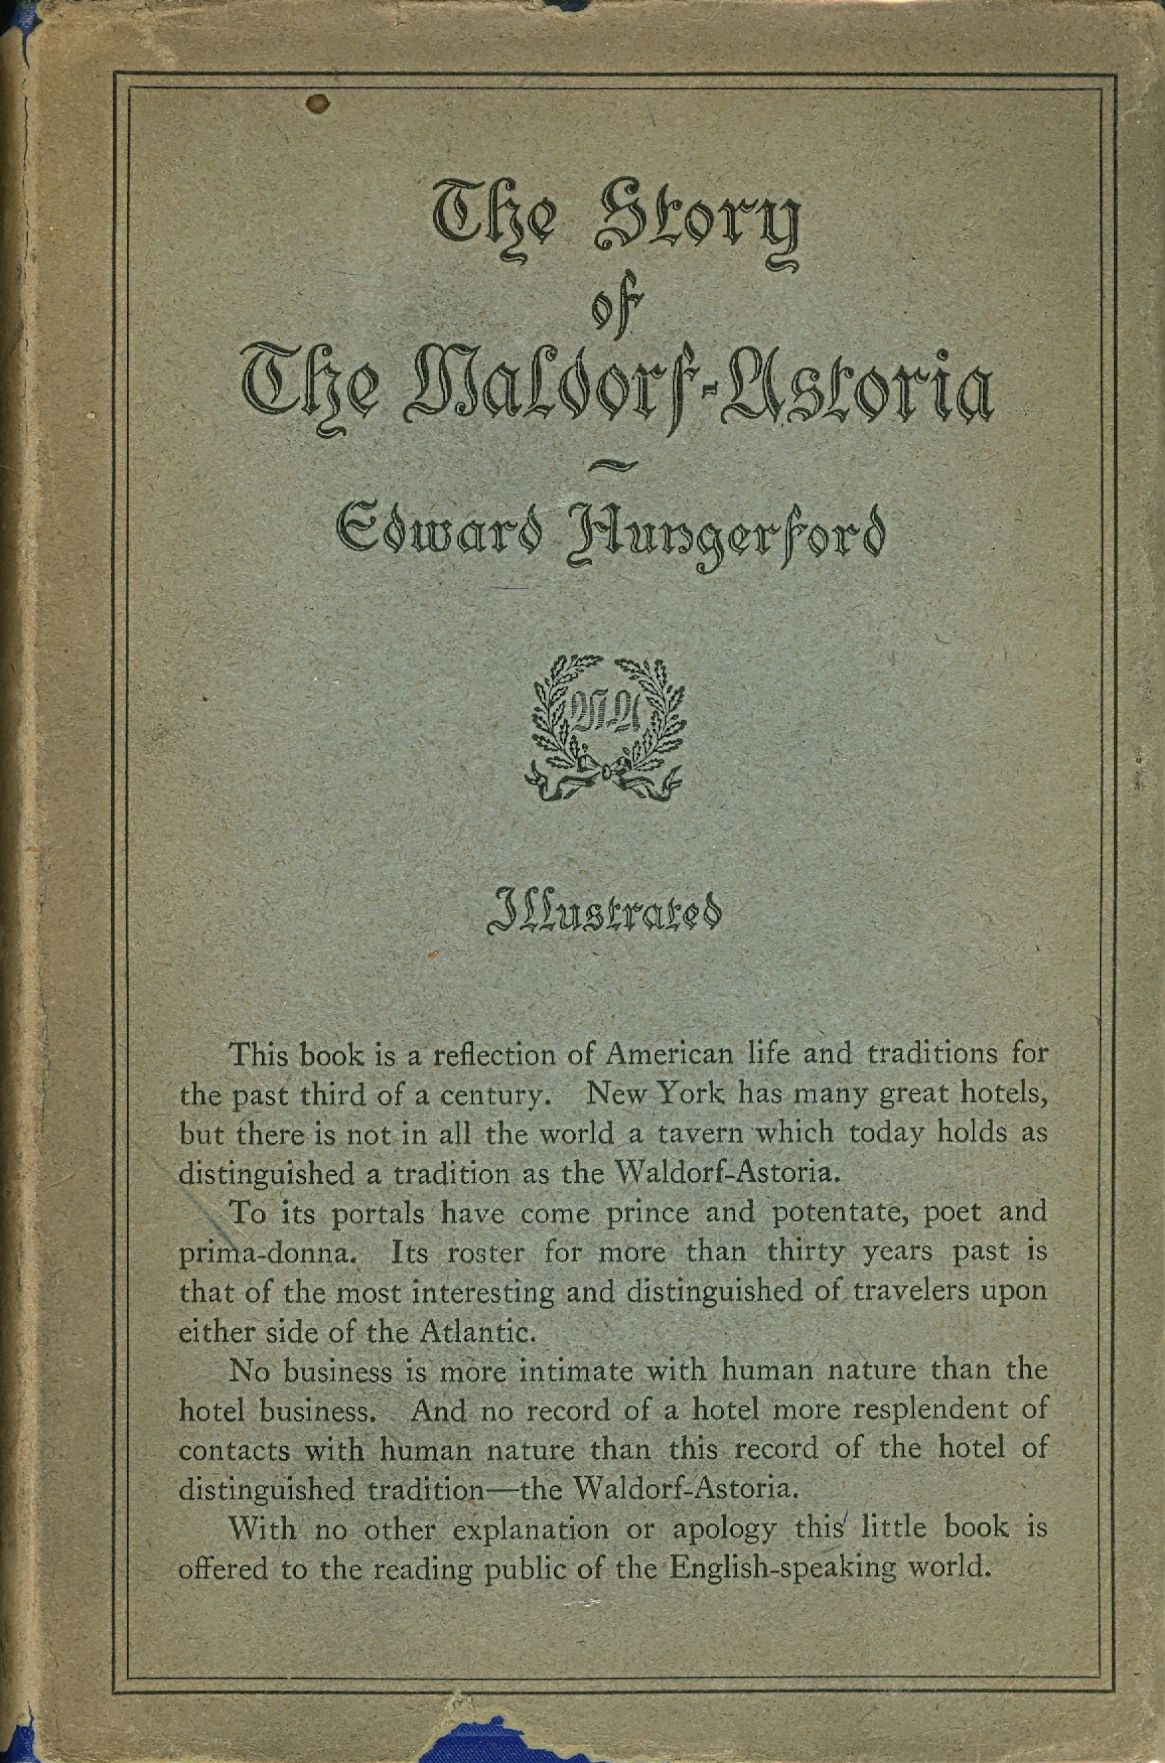 The Story of the Waldorf-Astoria. Illustrated. Edward Hungerford.